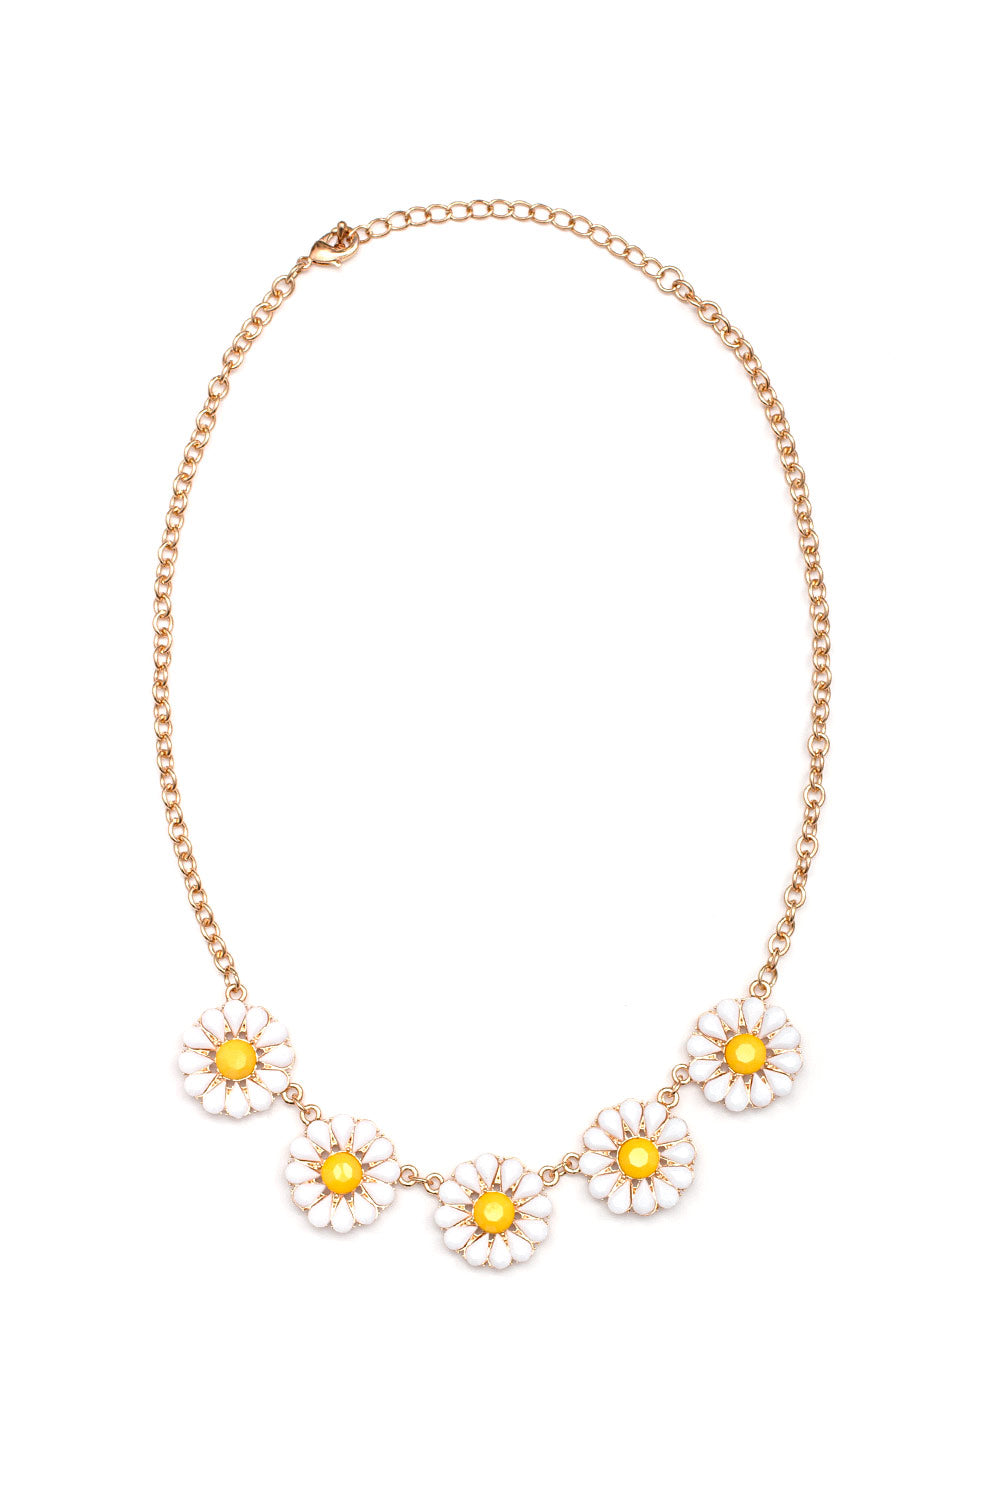 Type 1 Darling Daisies Necklace